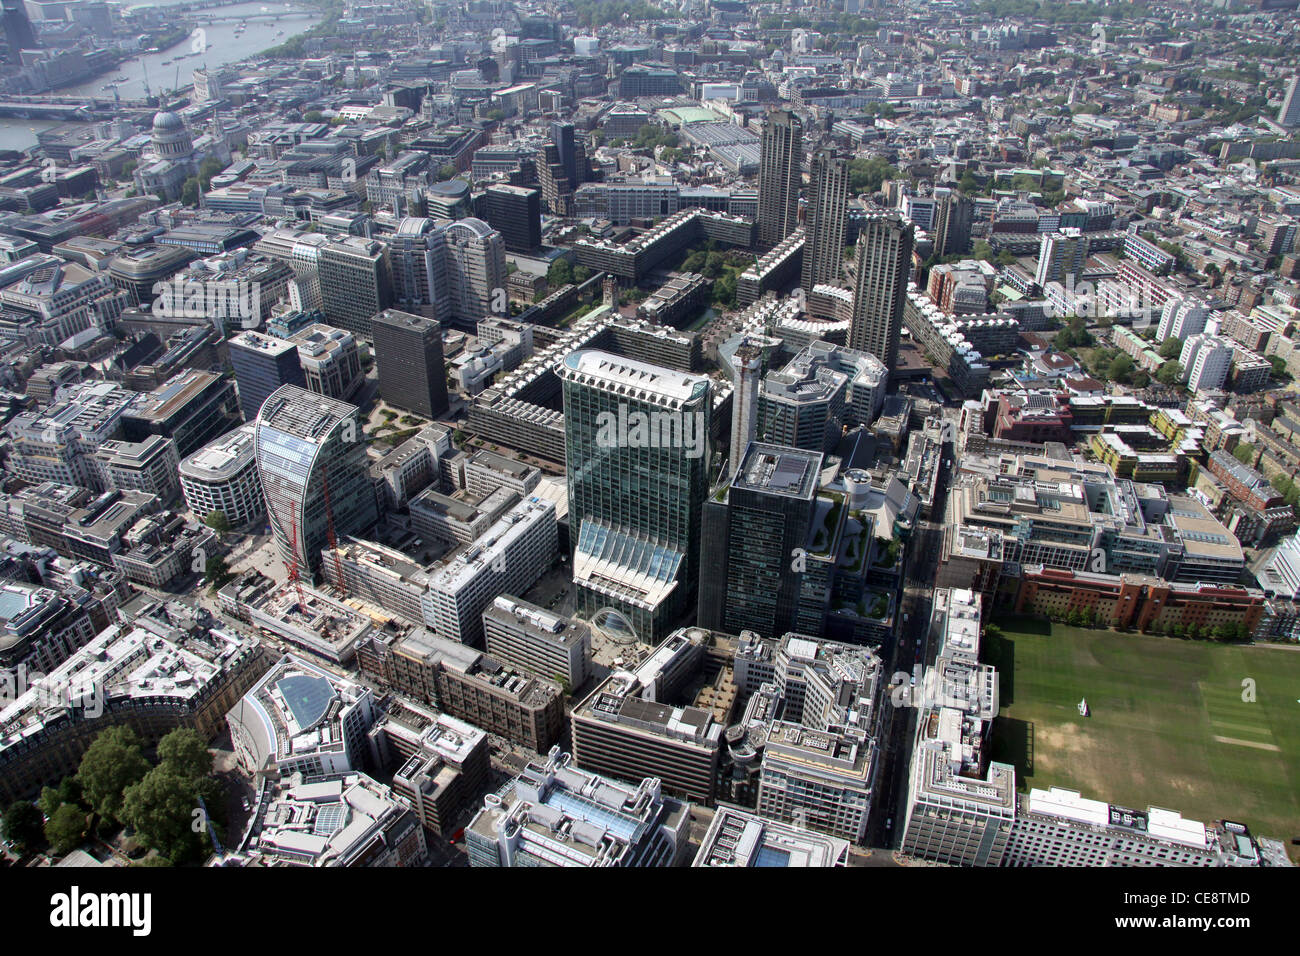 Aerial image of Moorgate Barbican area of London EC2 - Stock Image